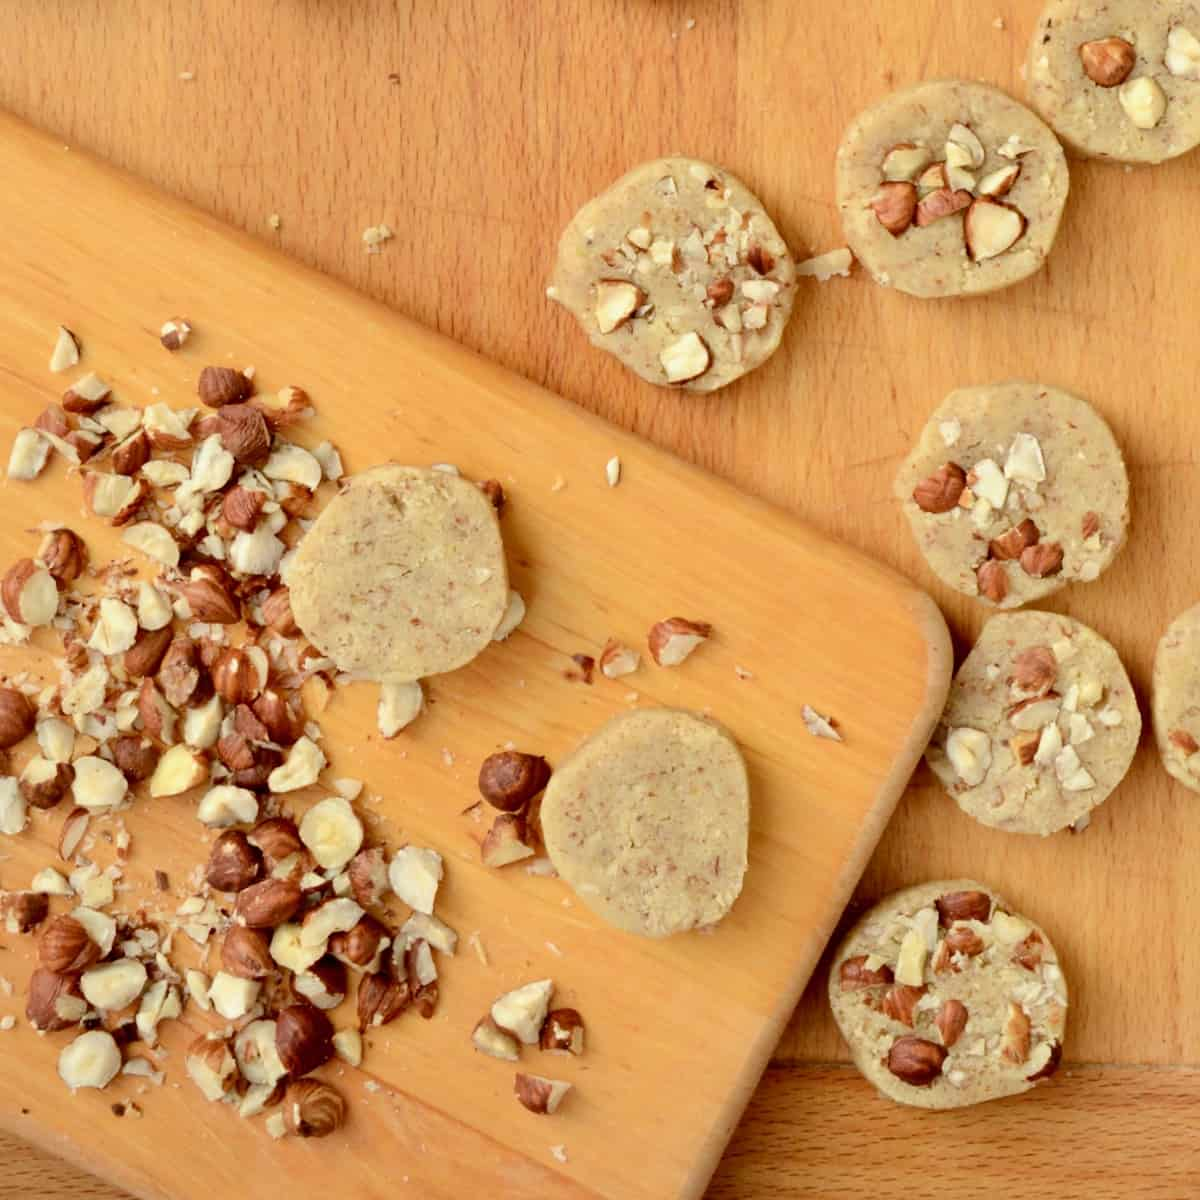 A chopping board with hazelnuts on, next to hazel topped cookies.